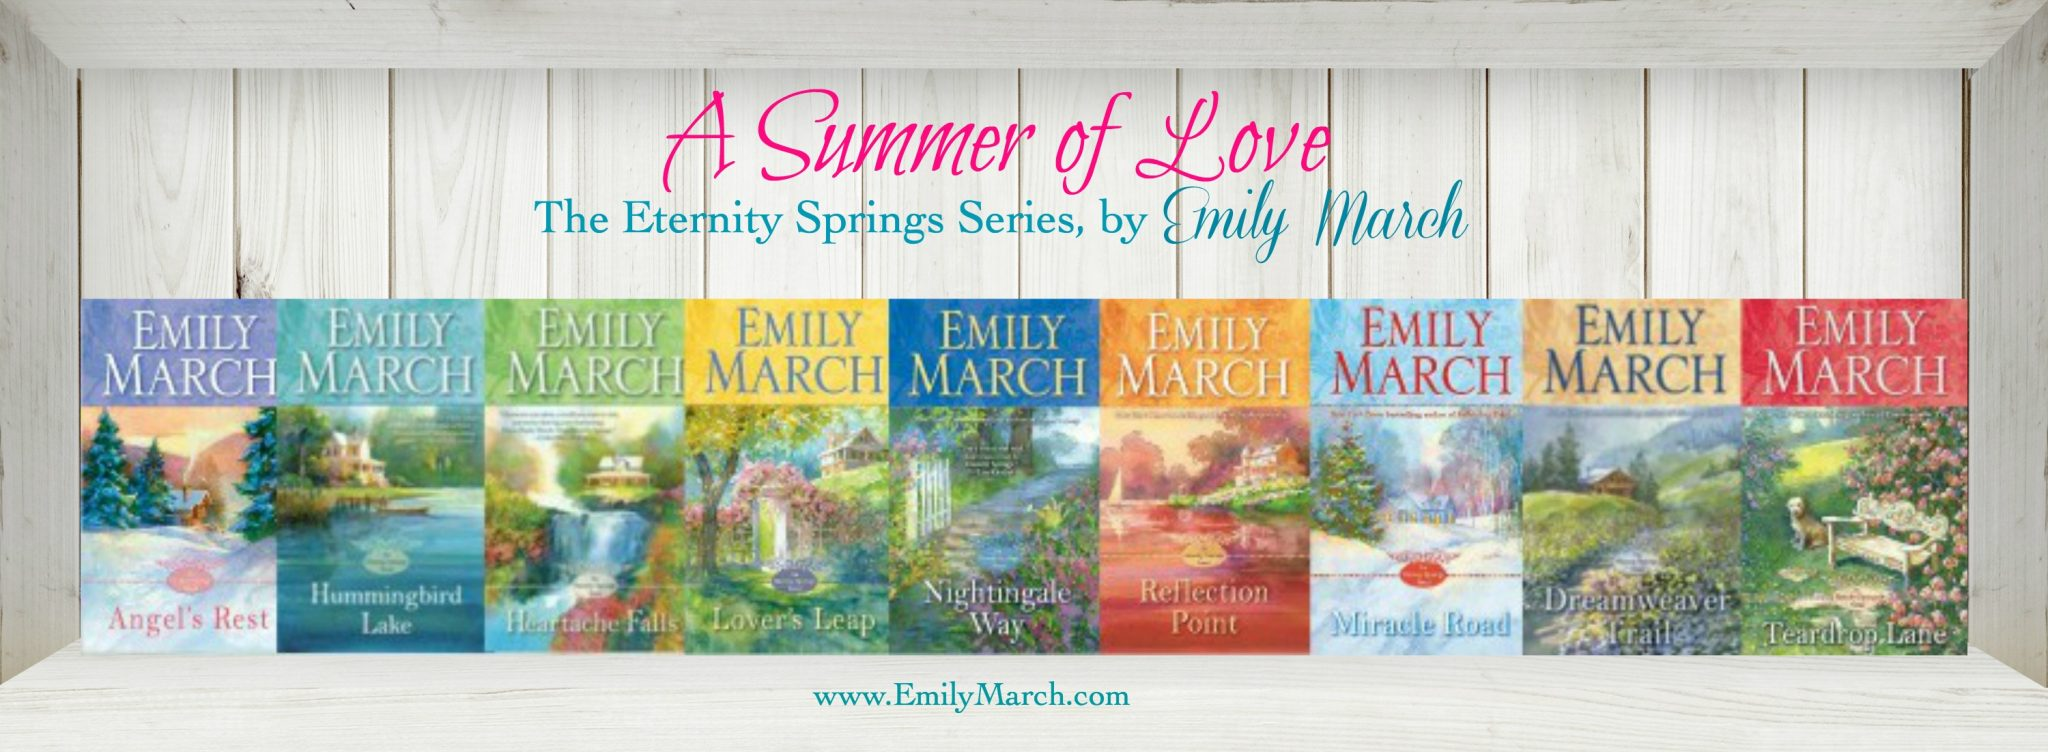 The Eternity Springs book collection - Emily March, author